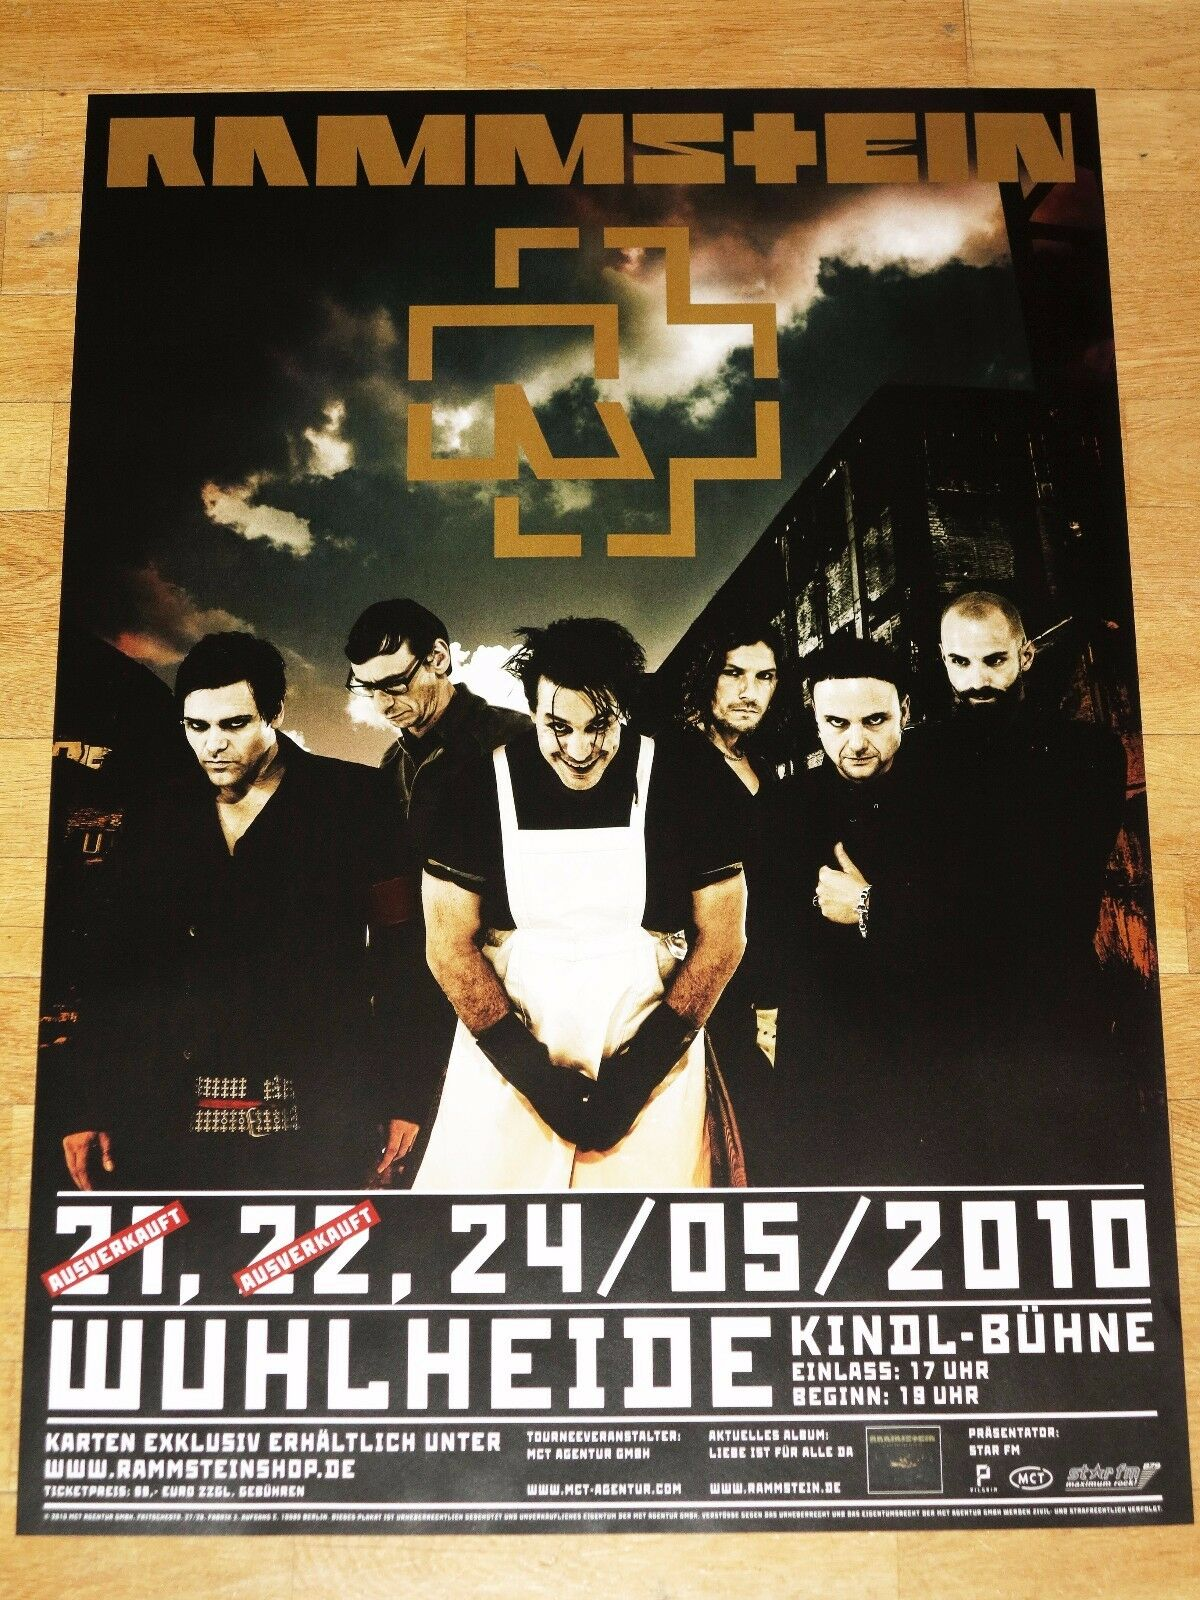 rammstein konzert poster 2010 berlin wuhlheide original plakat in mint eur 19 90 picclick de. Black Bedroom Furniture Sets. Home Design Ideas